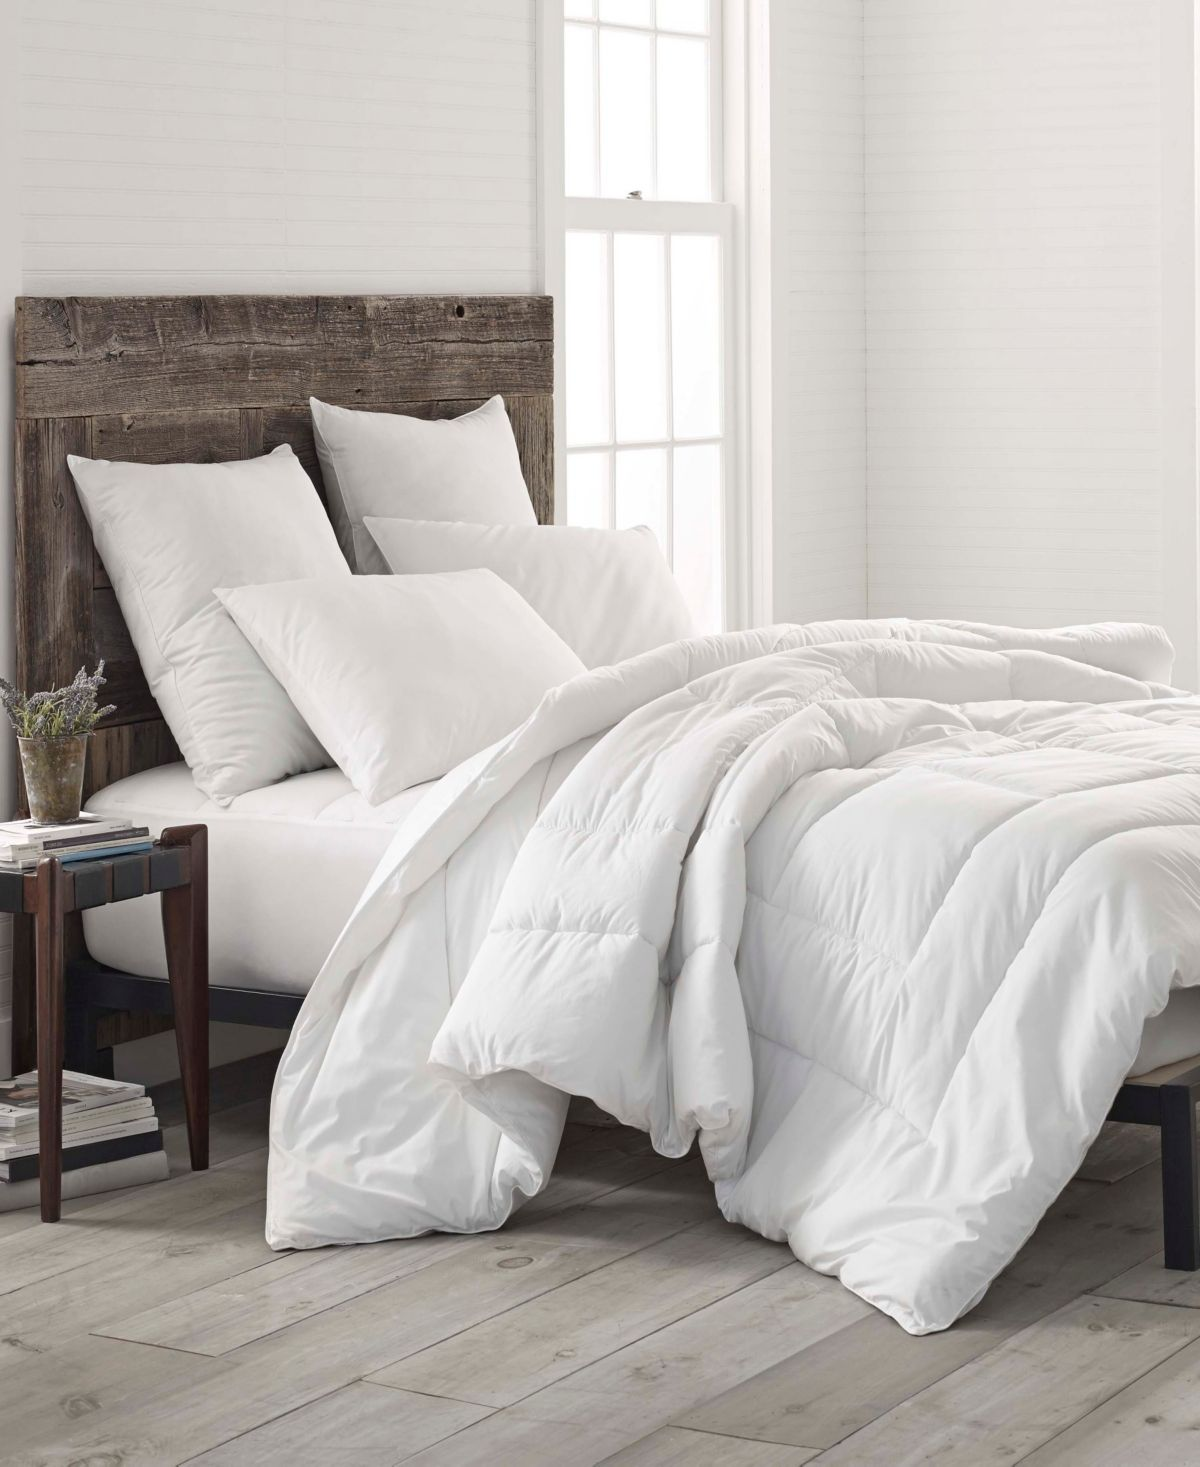 Photo of EcoPure Pure + Simple Full/Queen Comforter & Reviews – Comforters – Bed & Bath – Macy's